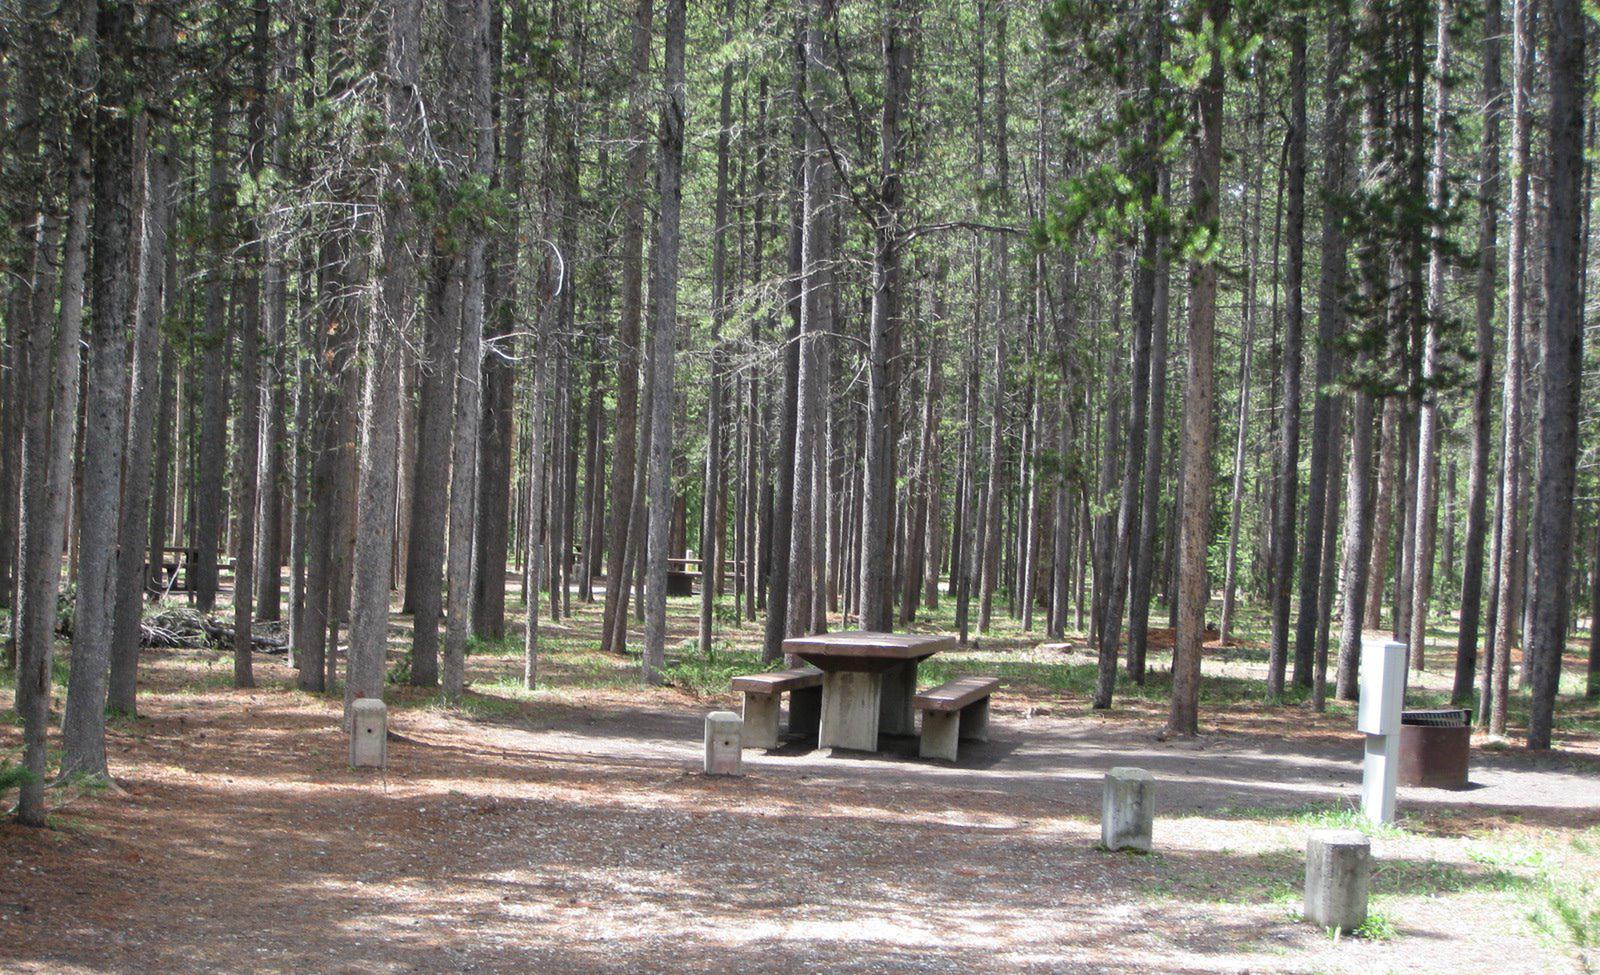 Site C18, surrounded by pine trees, picnic table & fire ringSite C18